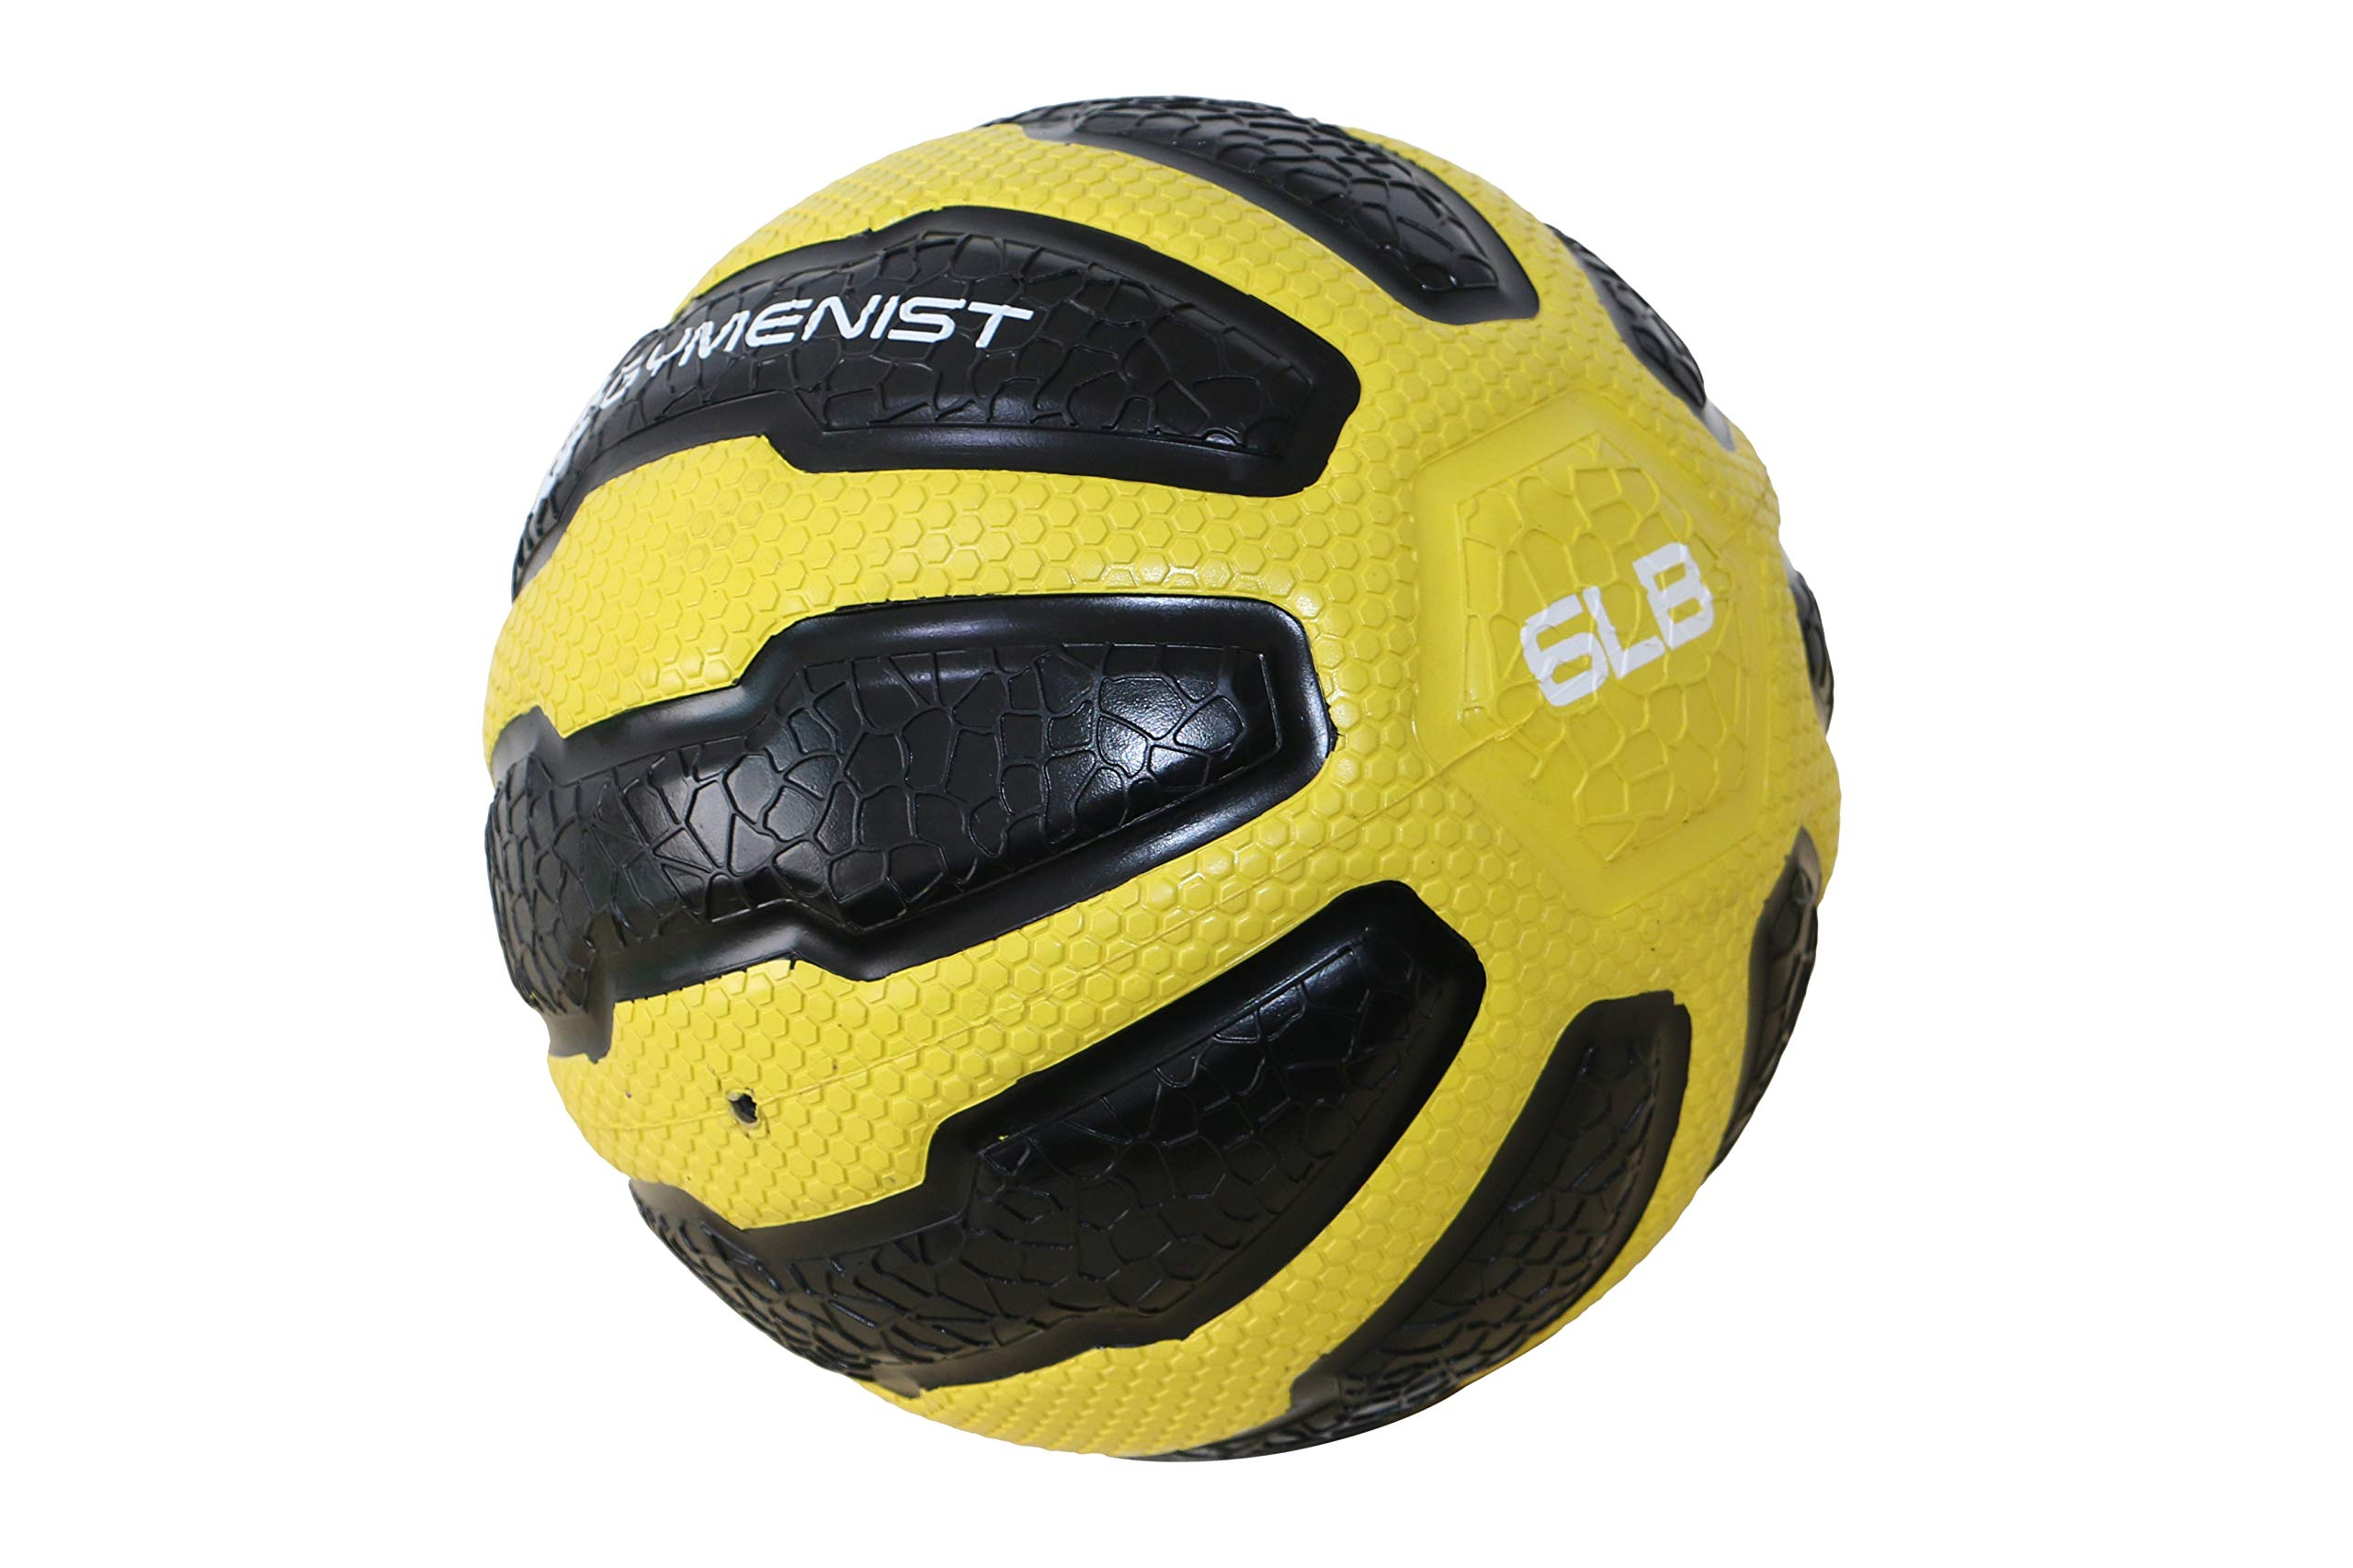 GYMENIST Rubber Medicine Ball with Textured Grip, Available in 9 Sizes, 2-20 LB, Weighted Fitness Balls,Improves Balance and Flexibility - Great for Gym, Workouts, (6 LB (Yellow-Black))